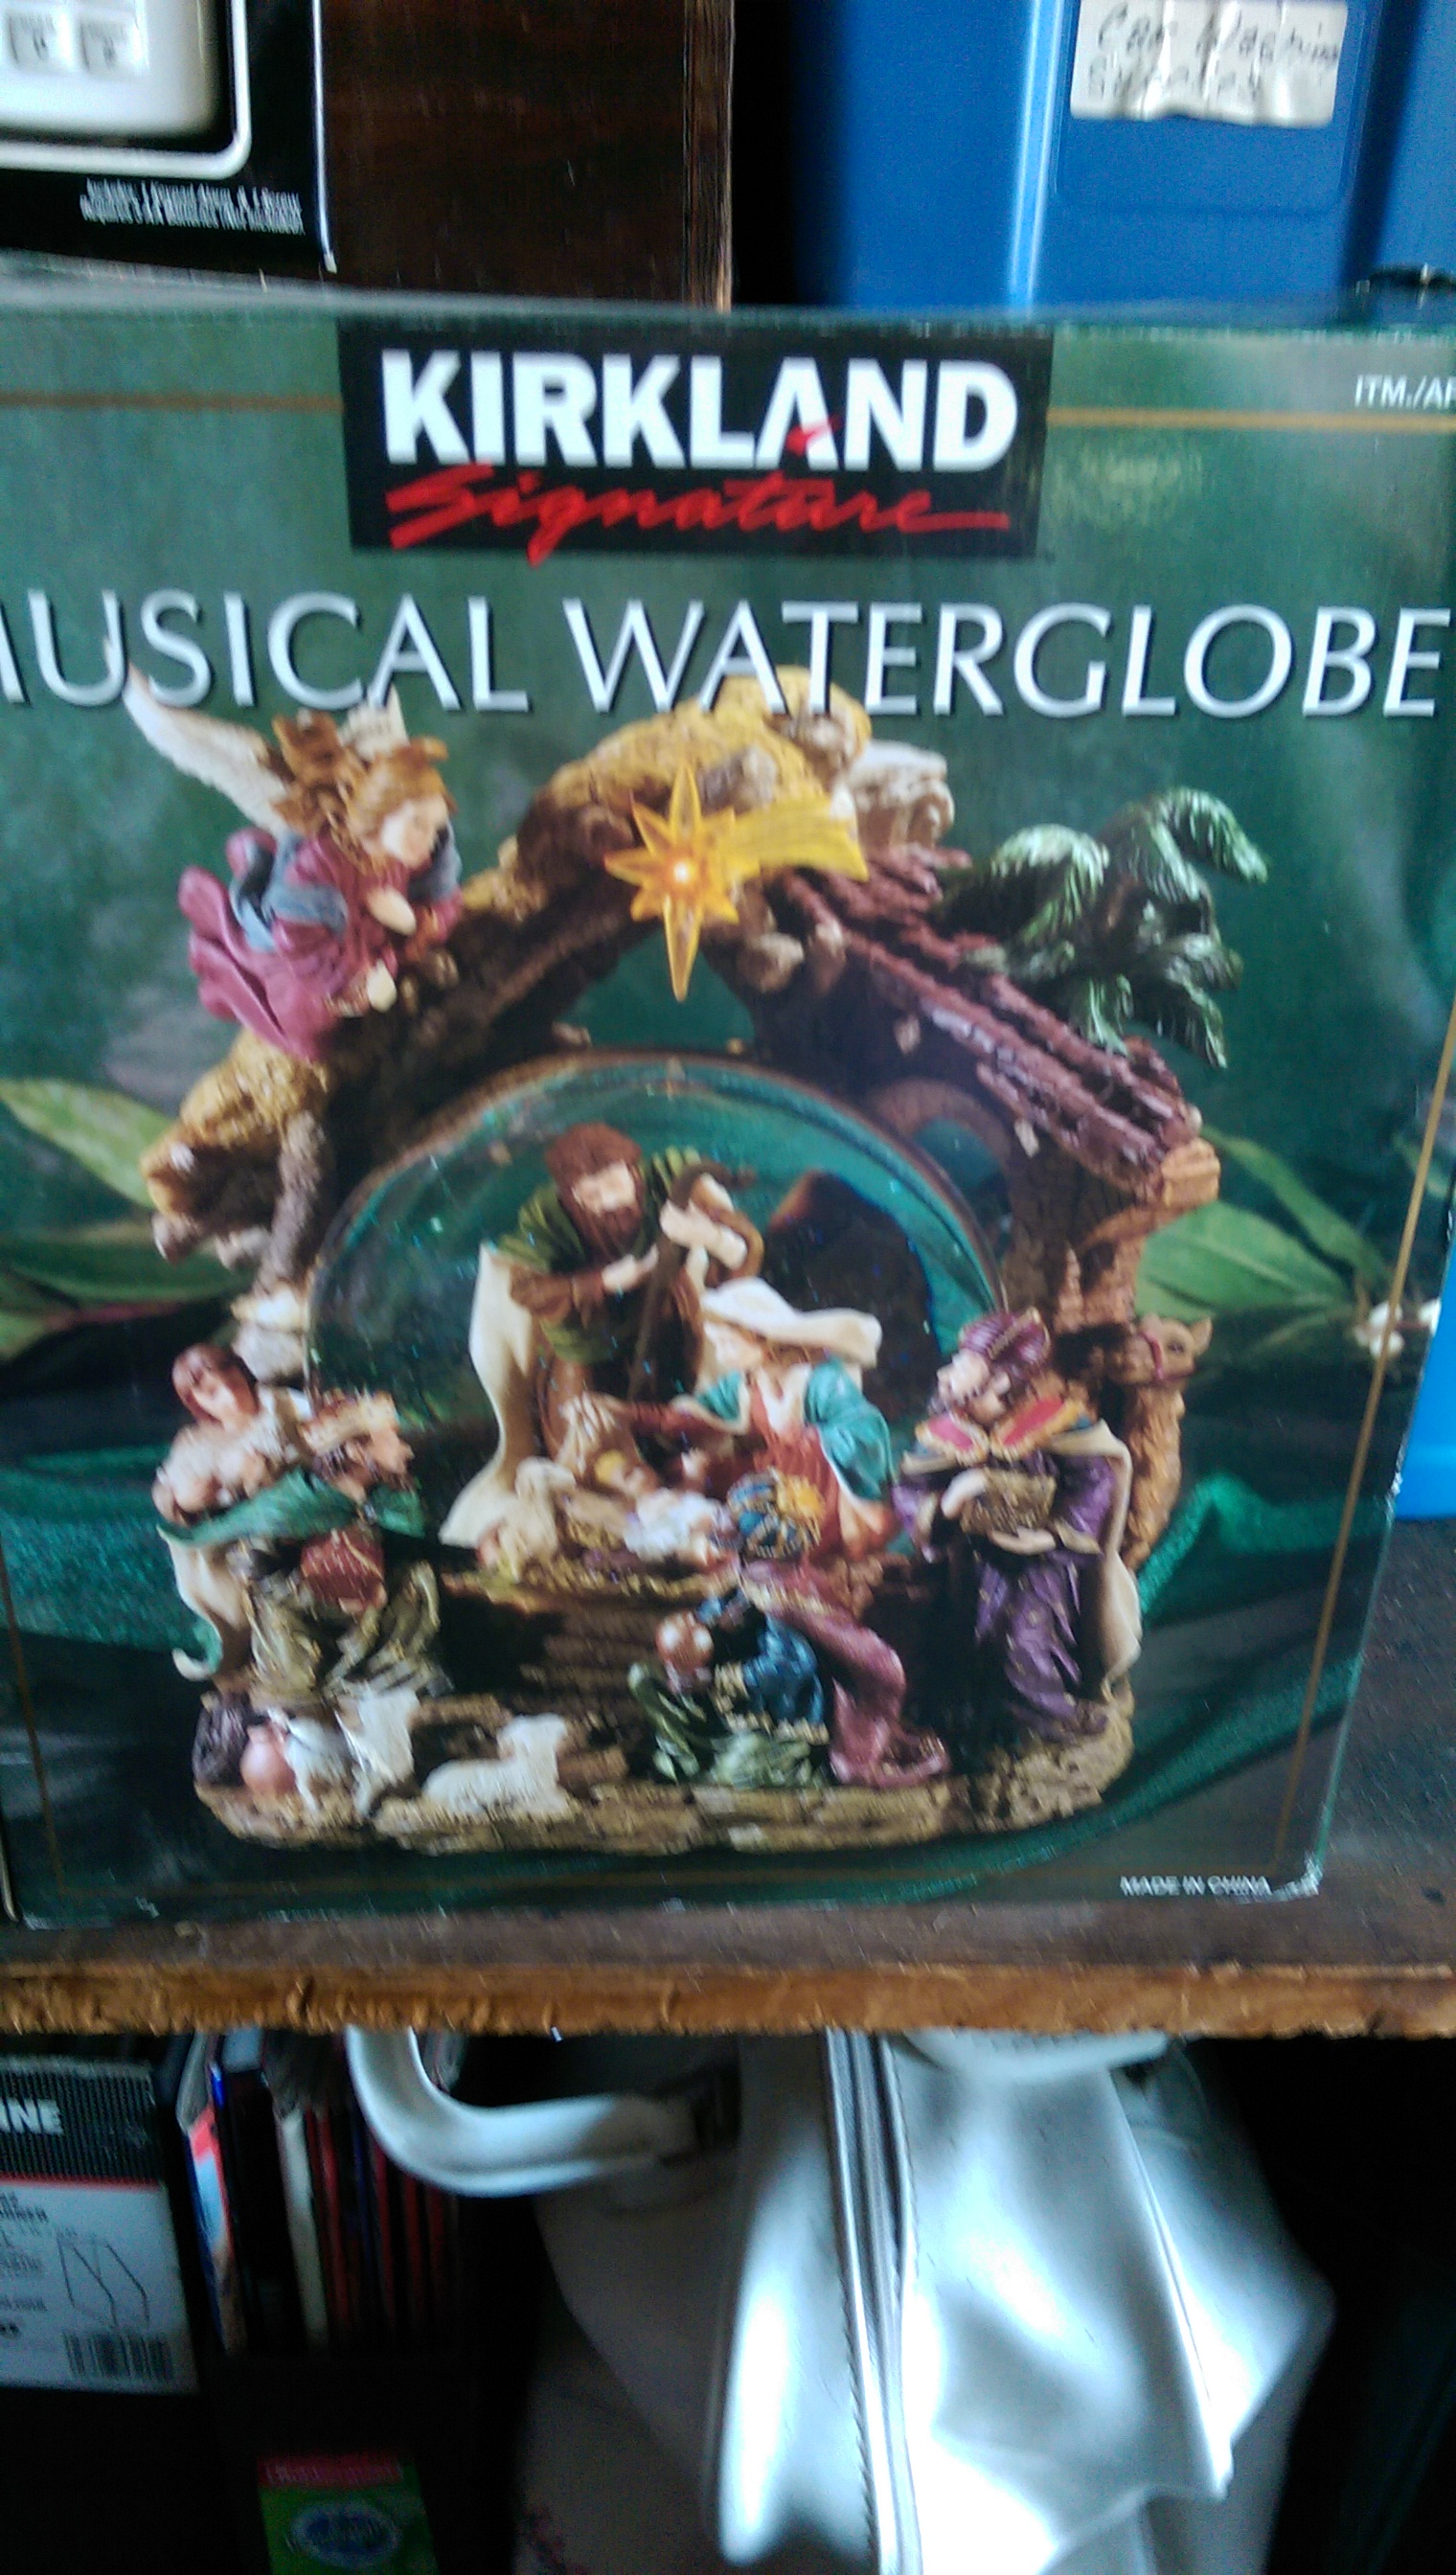 Kirkland Signature Musical Waterglobe Nativity Snowglobe - USA (Christmas Decor) front image (front cover)